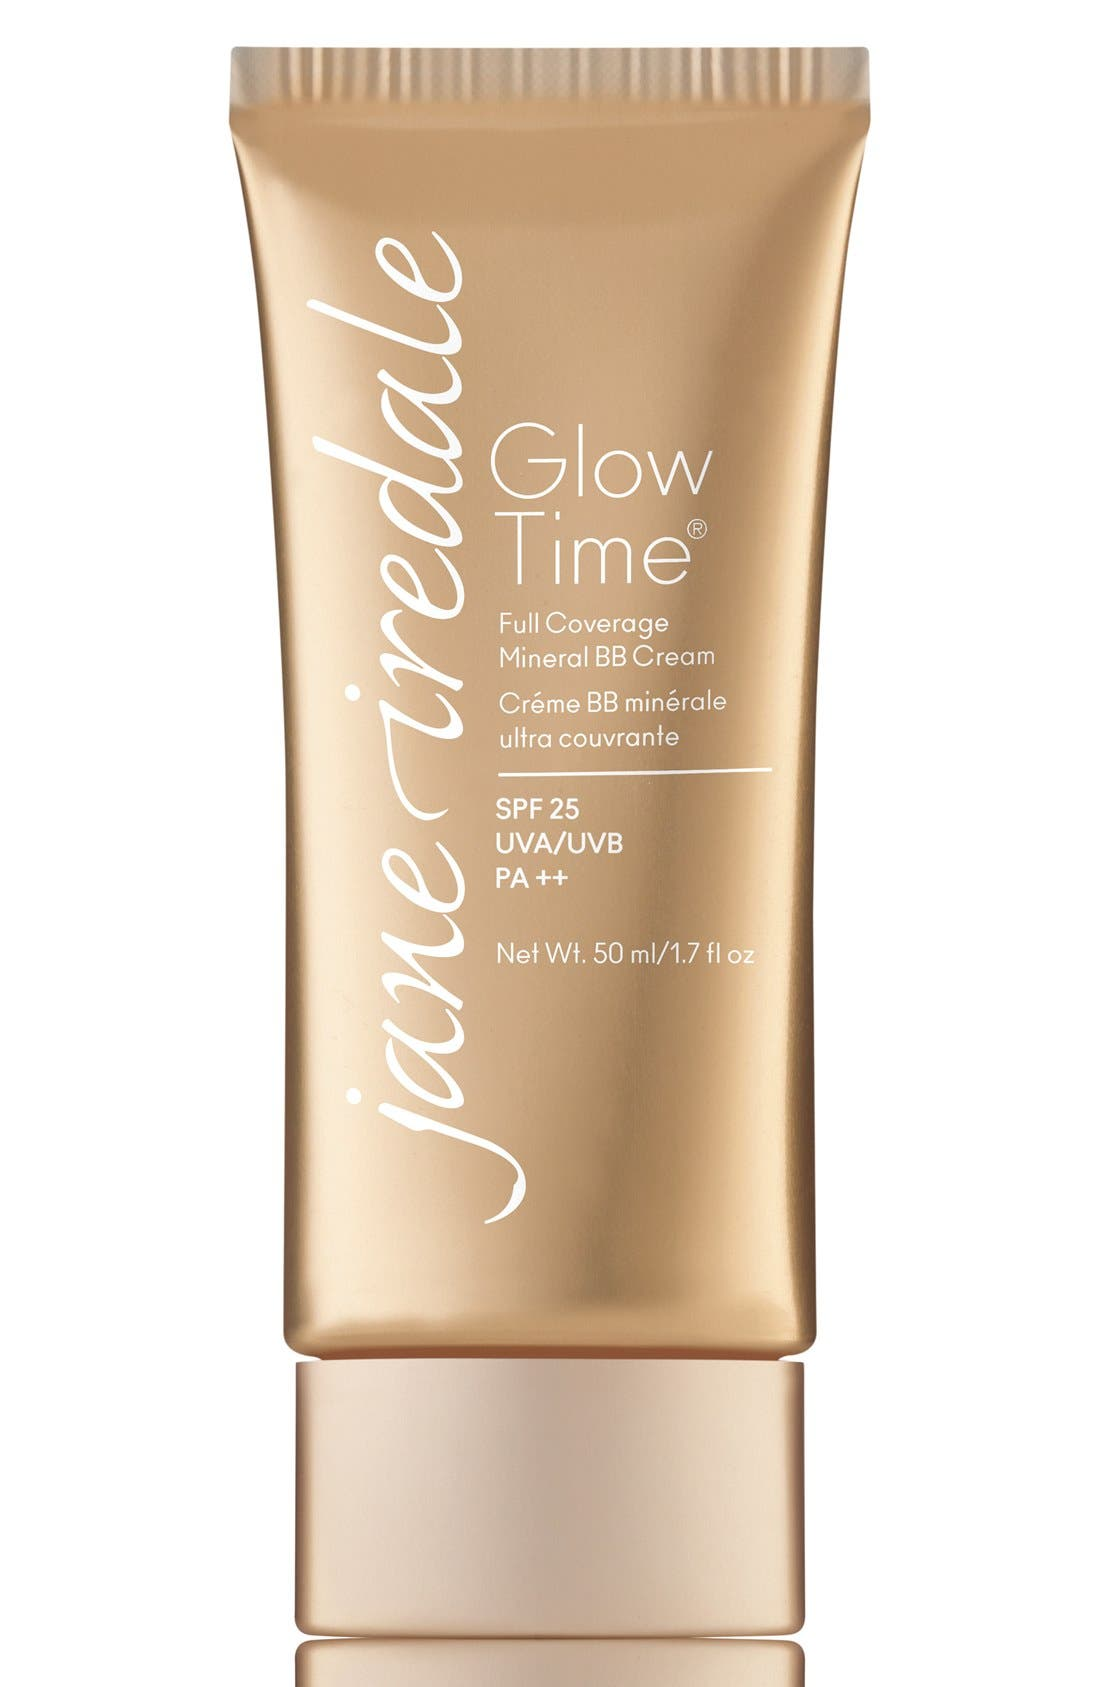 jane iredale Glow Time Full Coverage Mineral BB Cream Broad Spectrum SPF 25